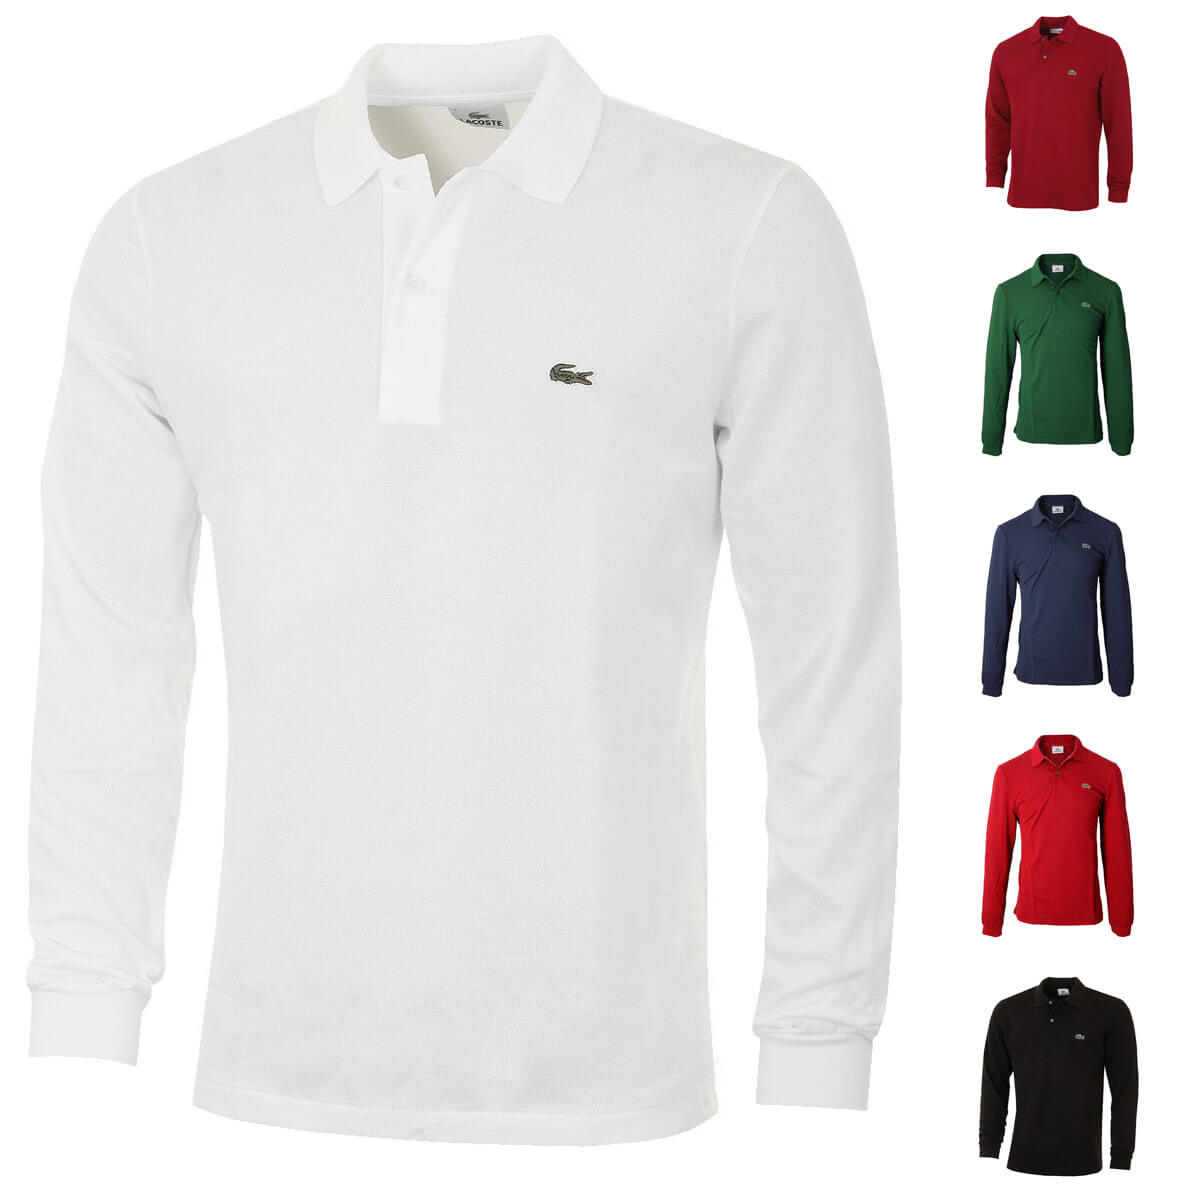 58404beac7 Lacoste Hommes 2019 Coton Classic Manches Longues L1312 Polo | eBay